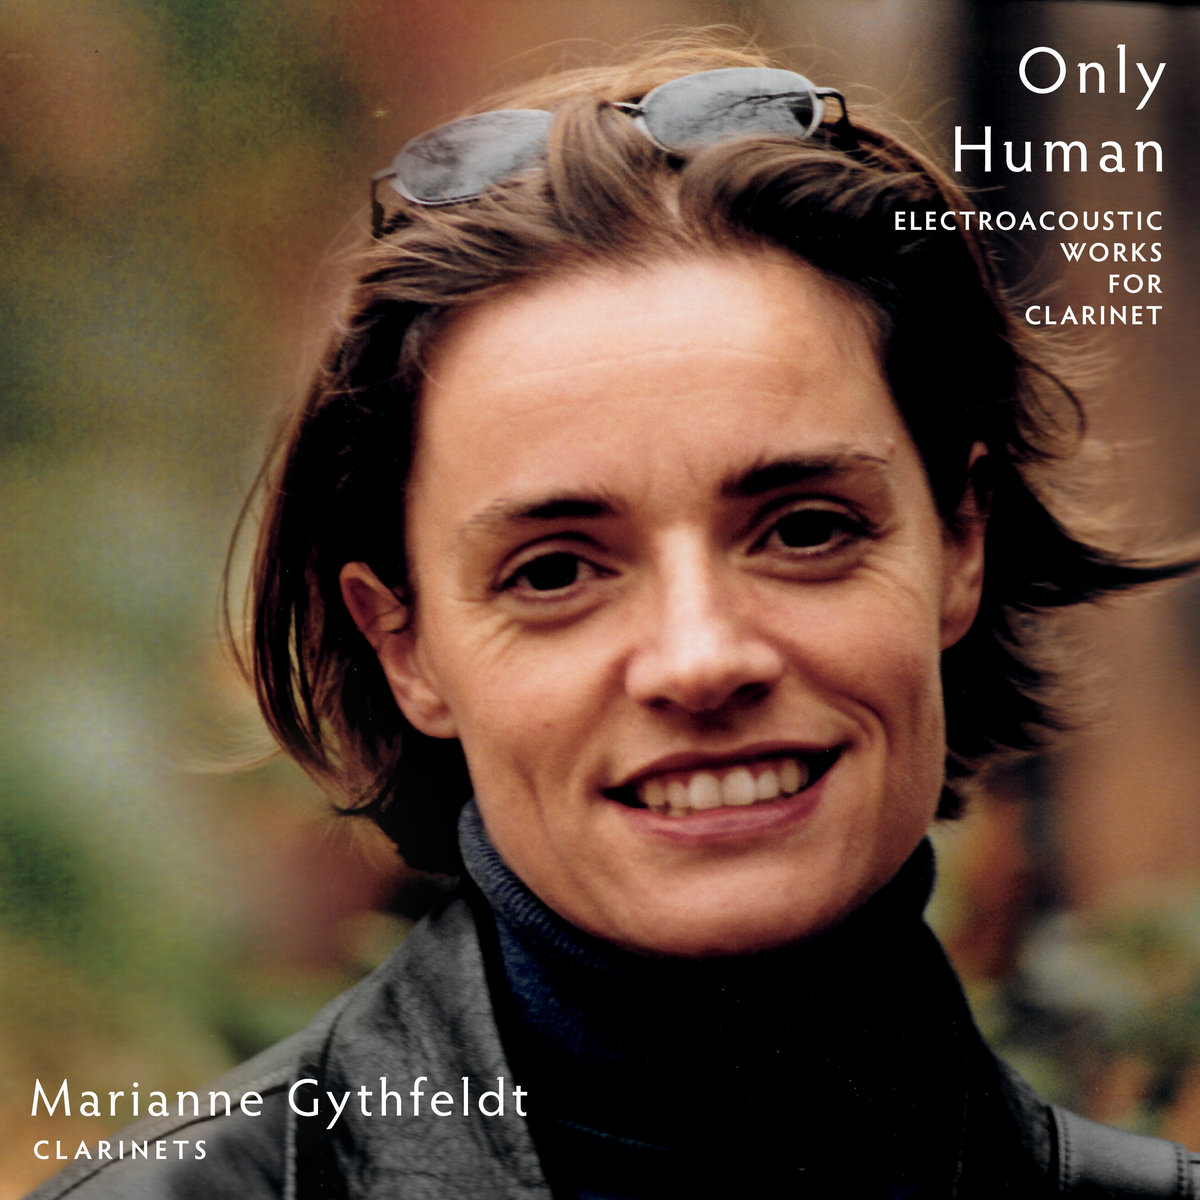 [Only Human CD cover]